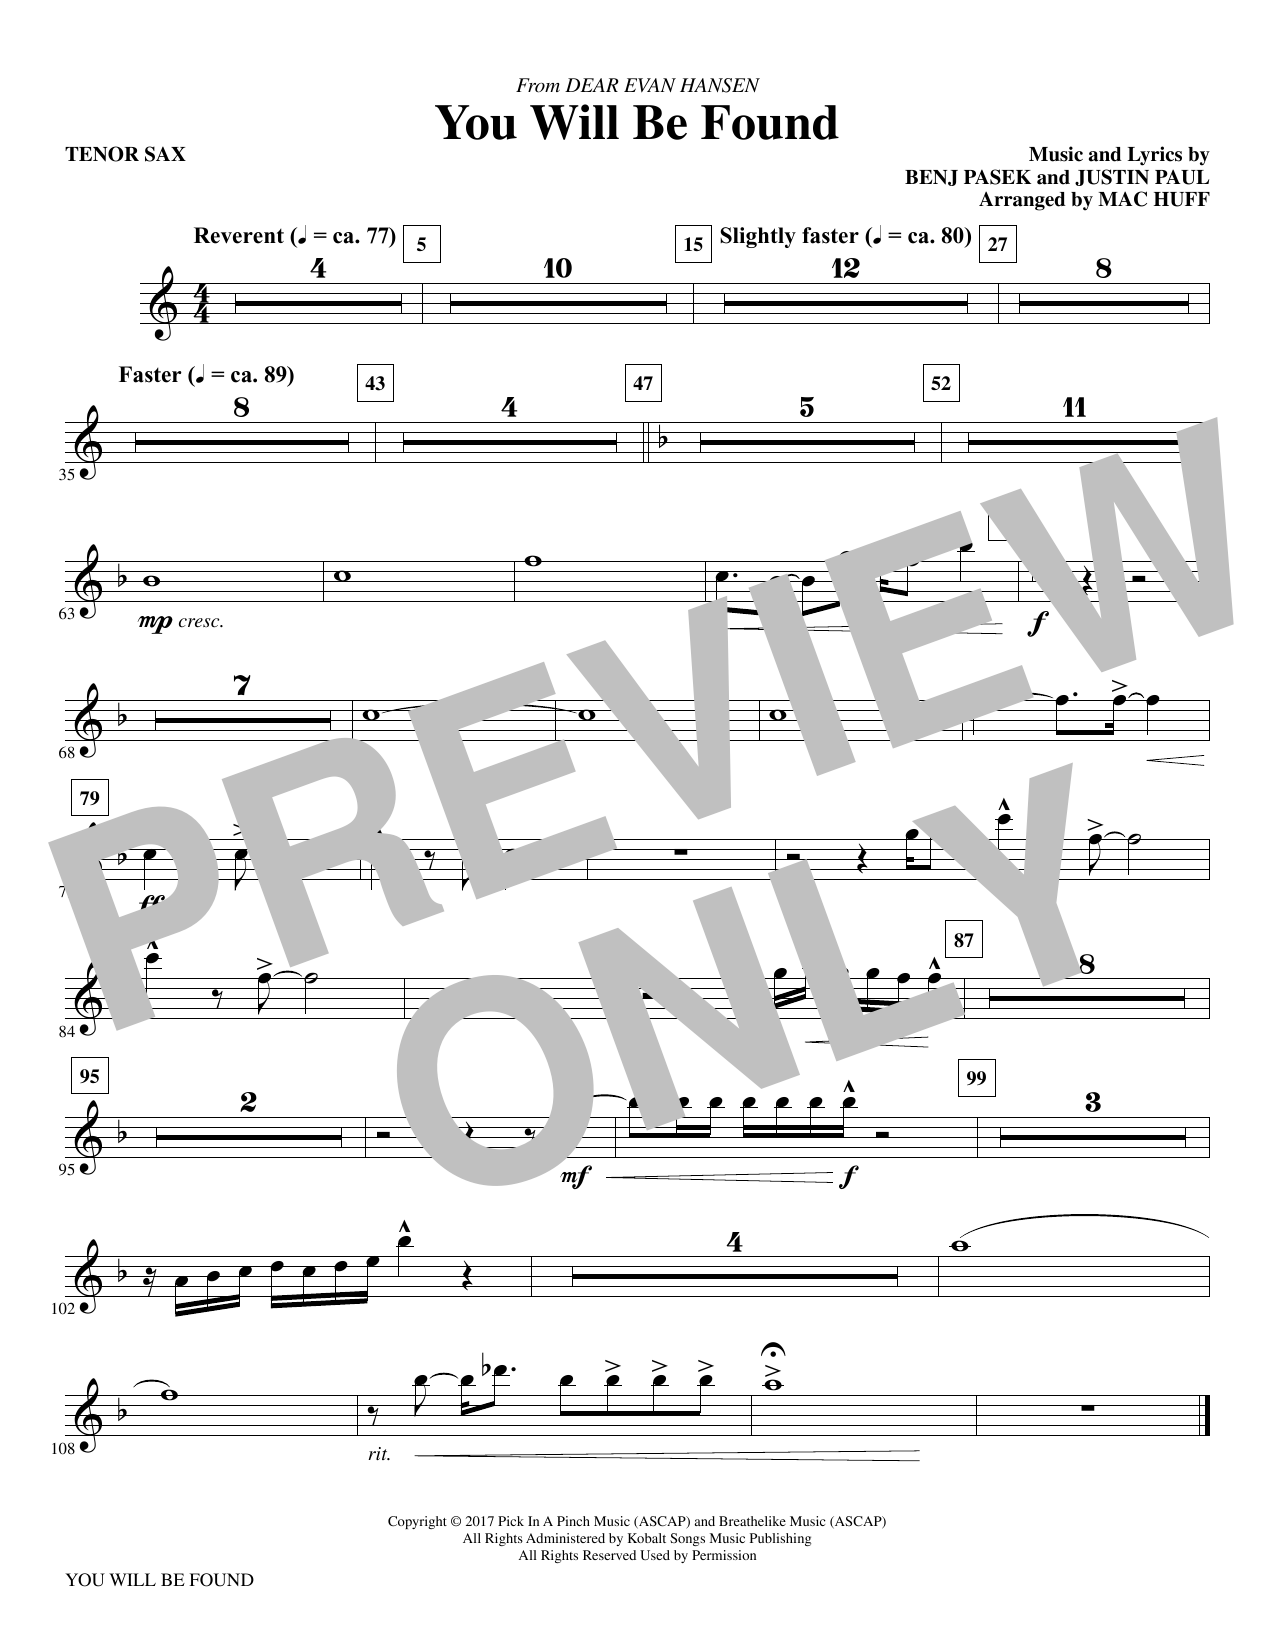 You Will Be Found (from Dear Evan Hansen) (arr. Mac Huff) - Tenor Saxophone Sheet Music